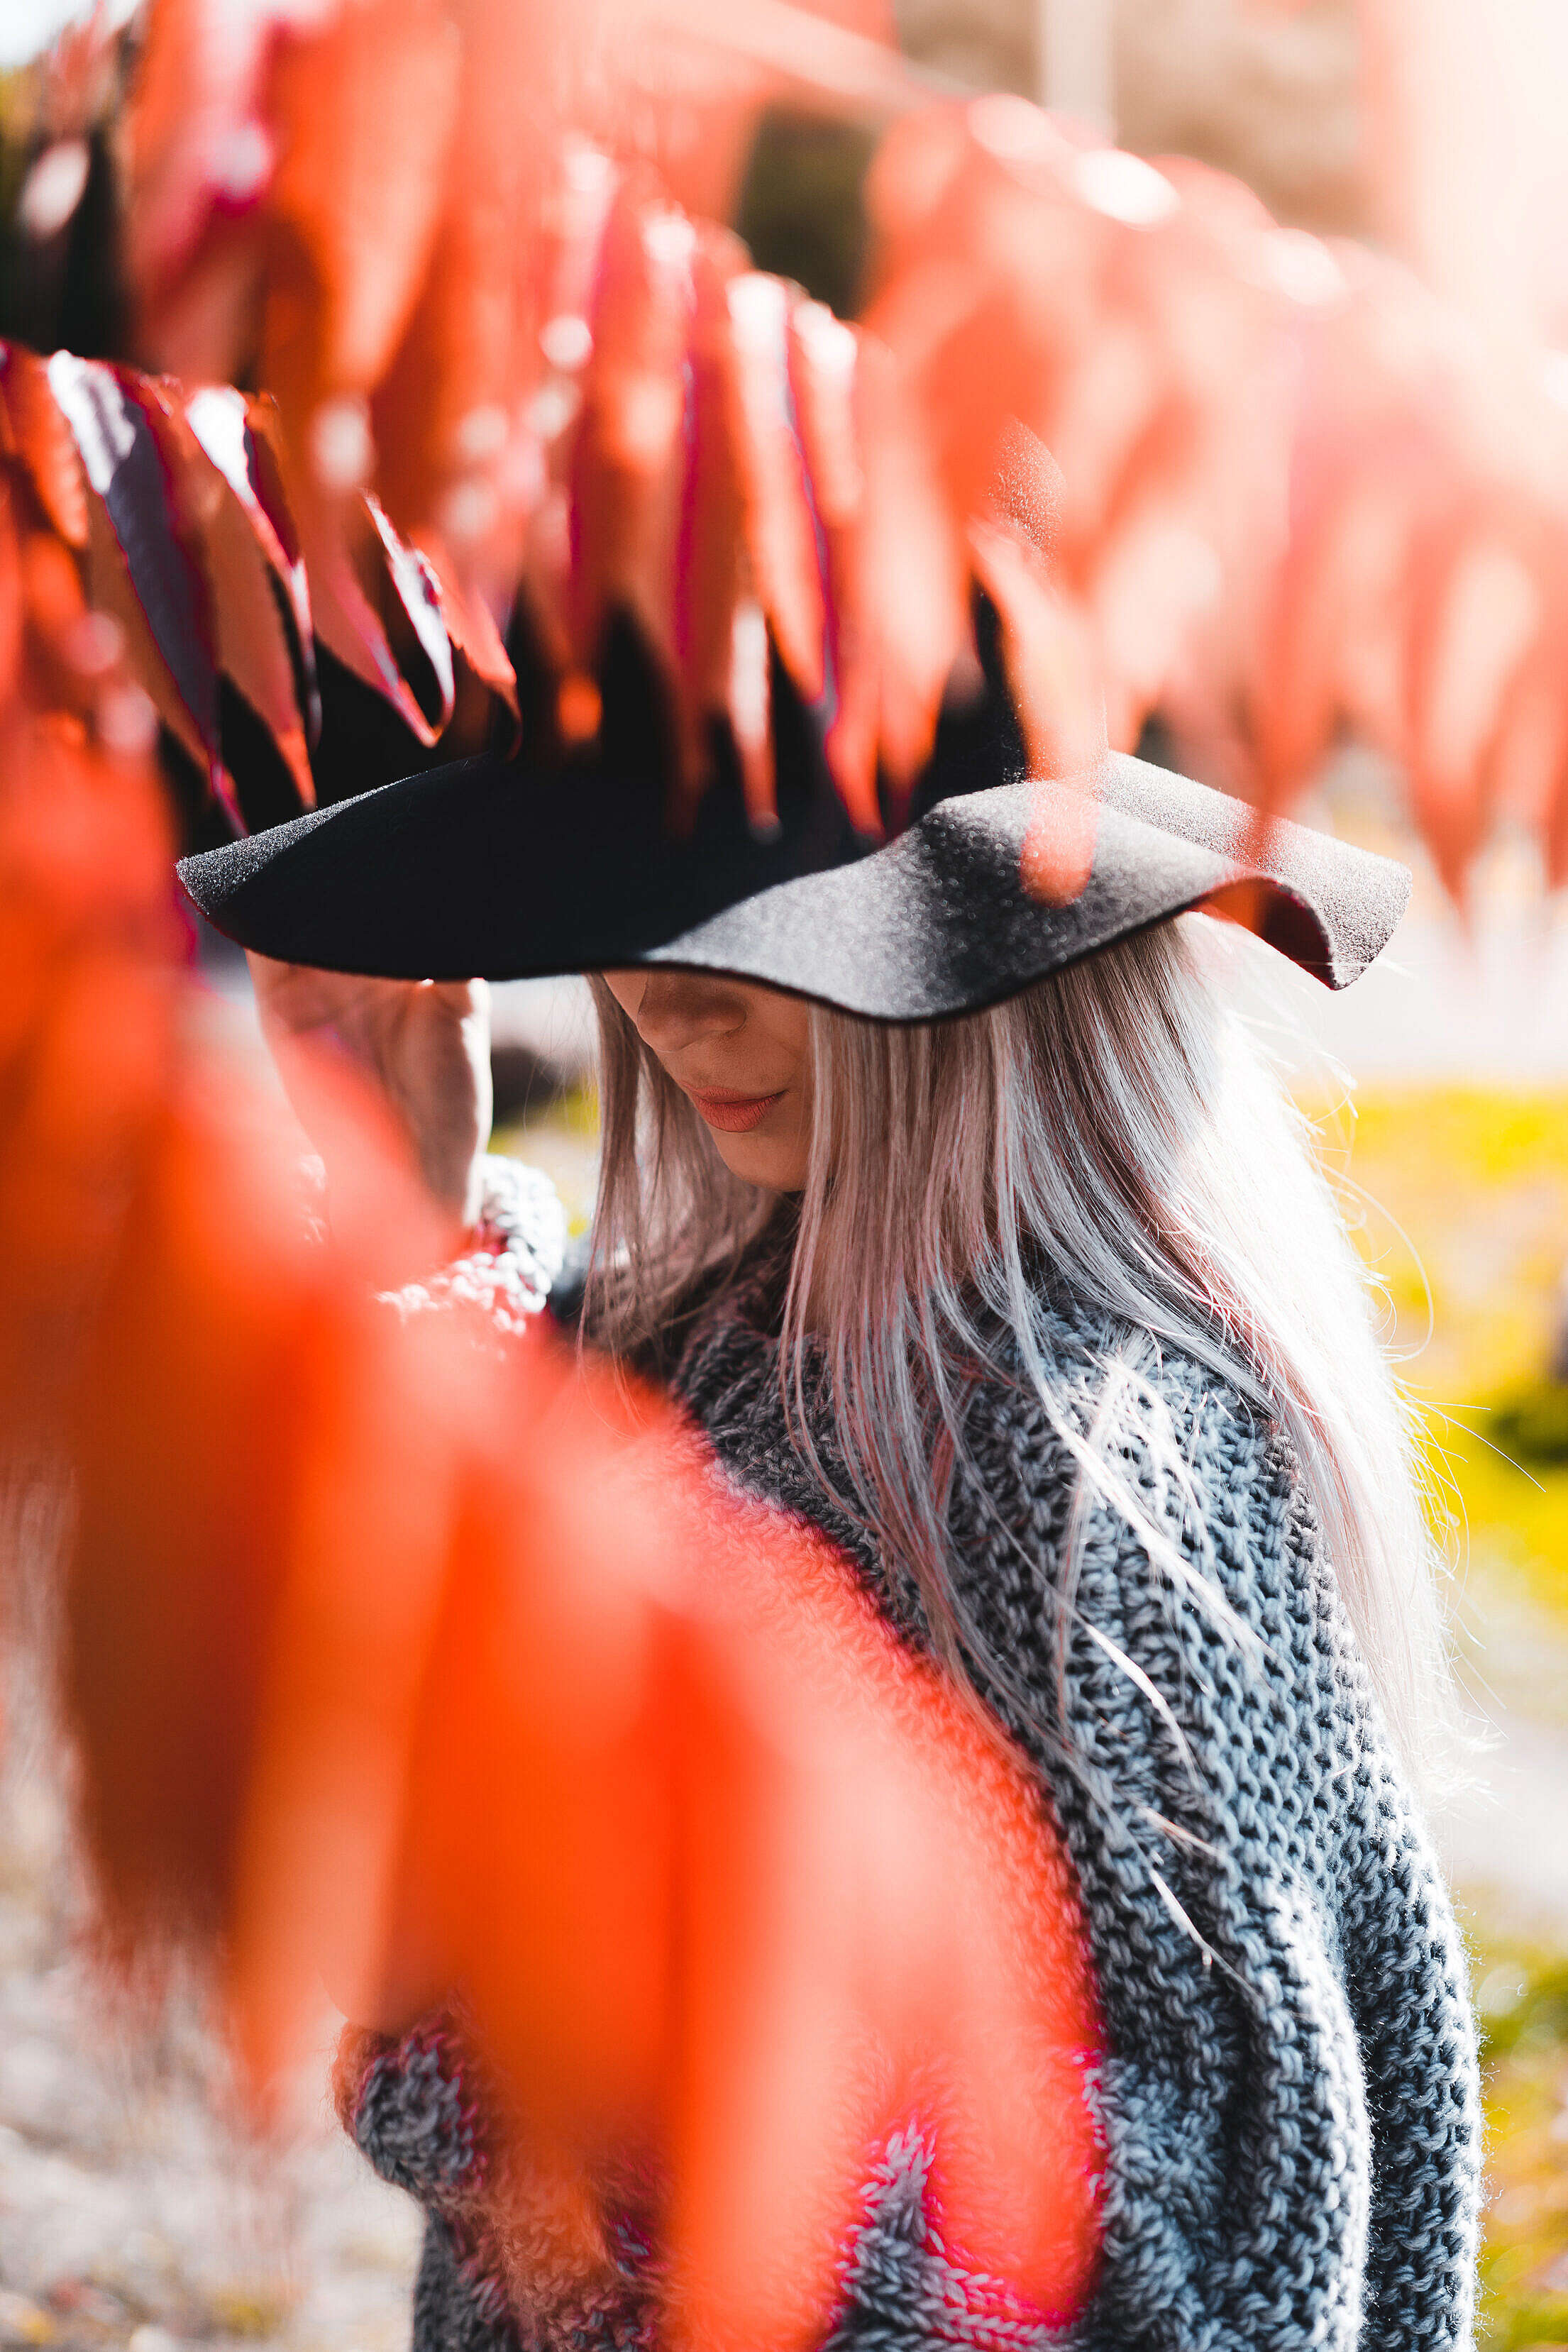 Woman in a Hat Hiding Behind The Tree Branches Free Stock Photo